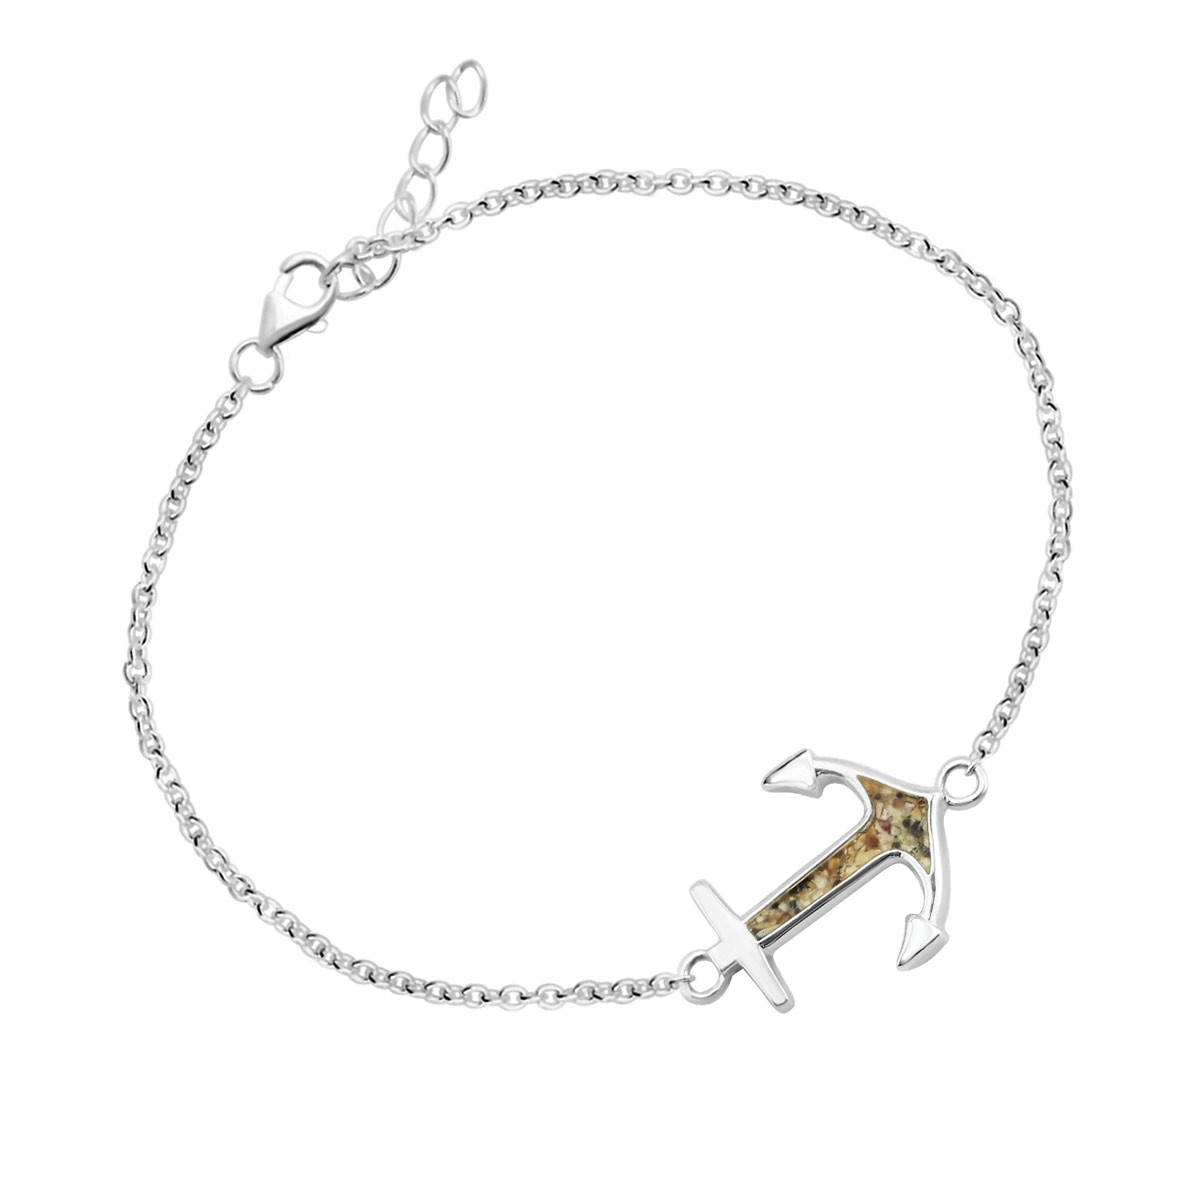 Anchor Chain Bracelet - Click to enlarge